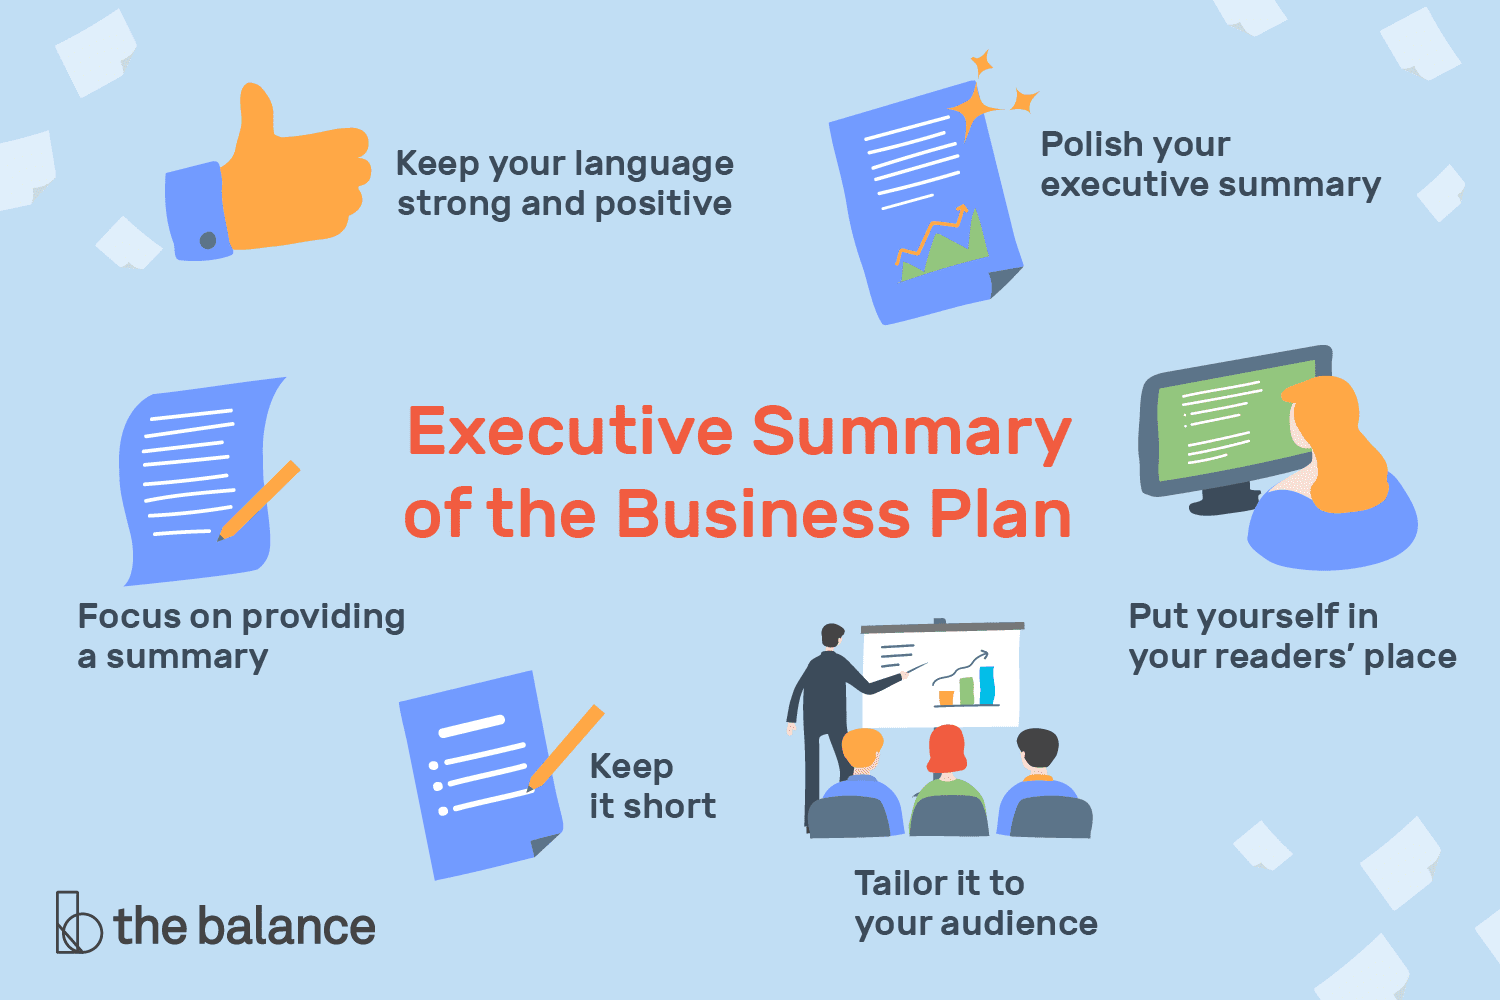 Executive summary of the business plan tips for writing the business plans executive summary wajeb